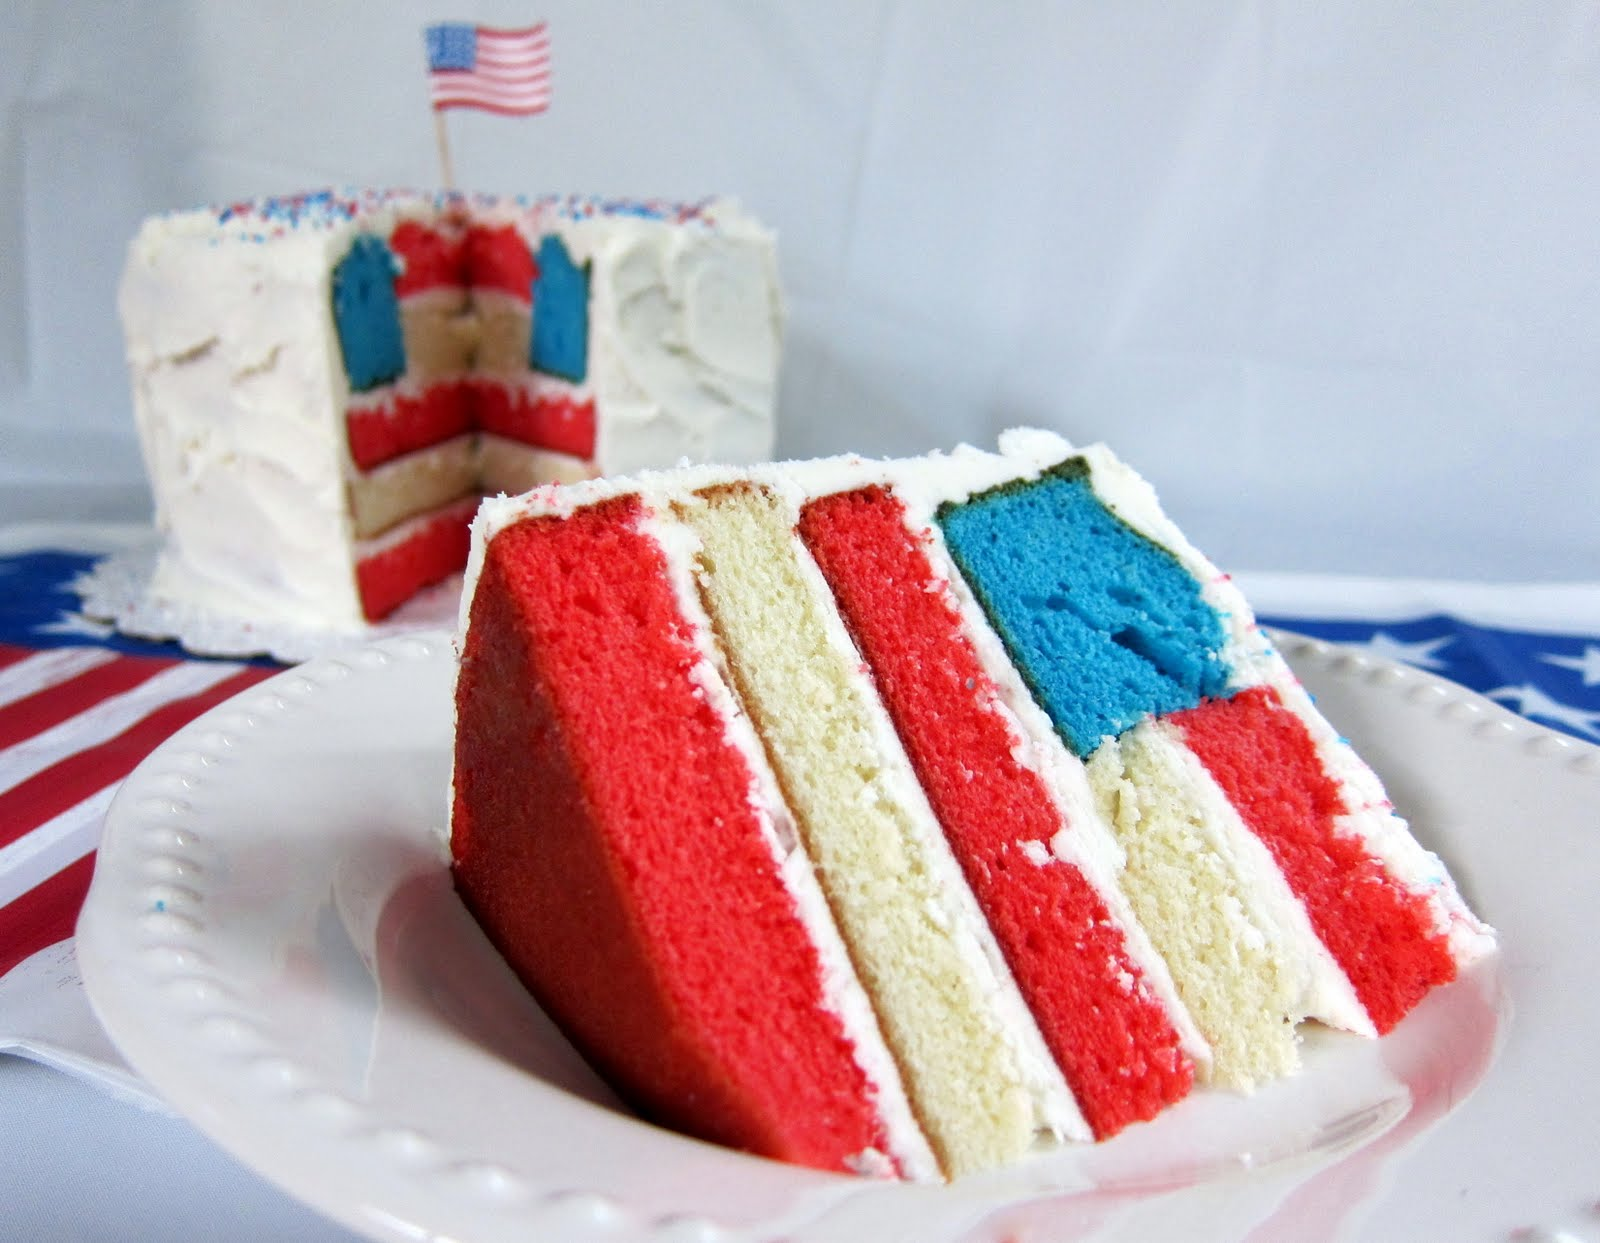 Prepping For The 4th Of July?